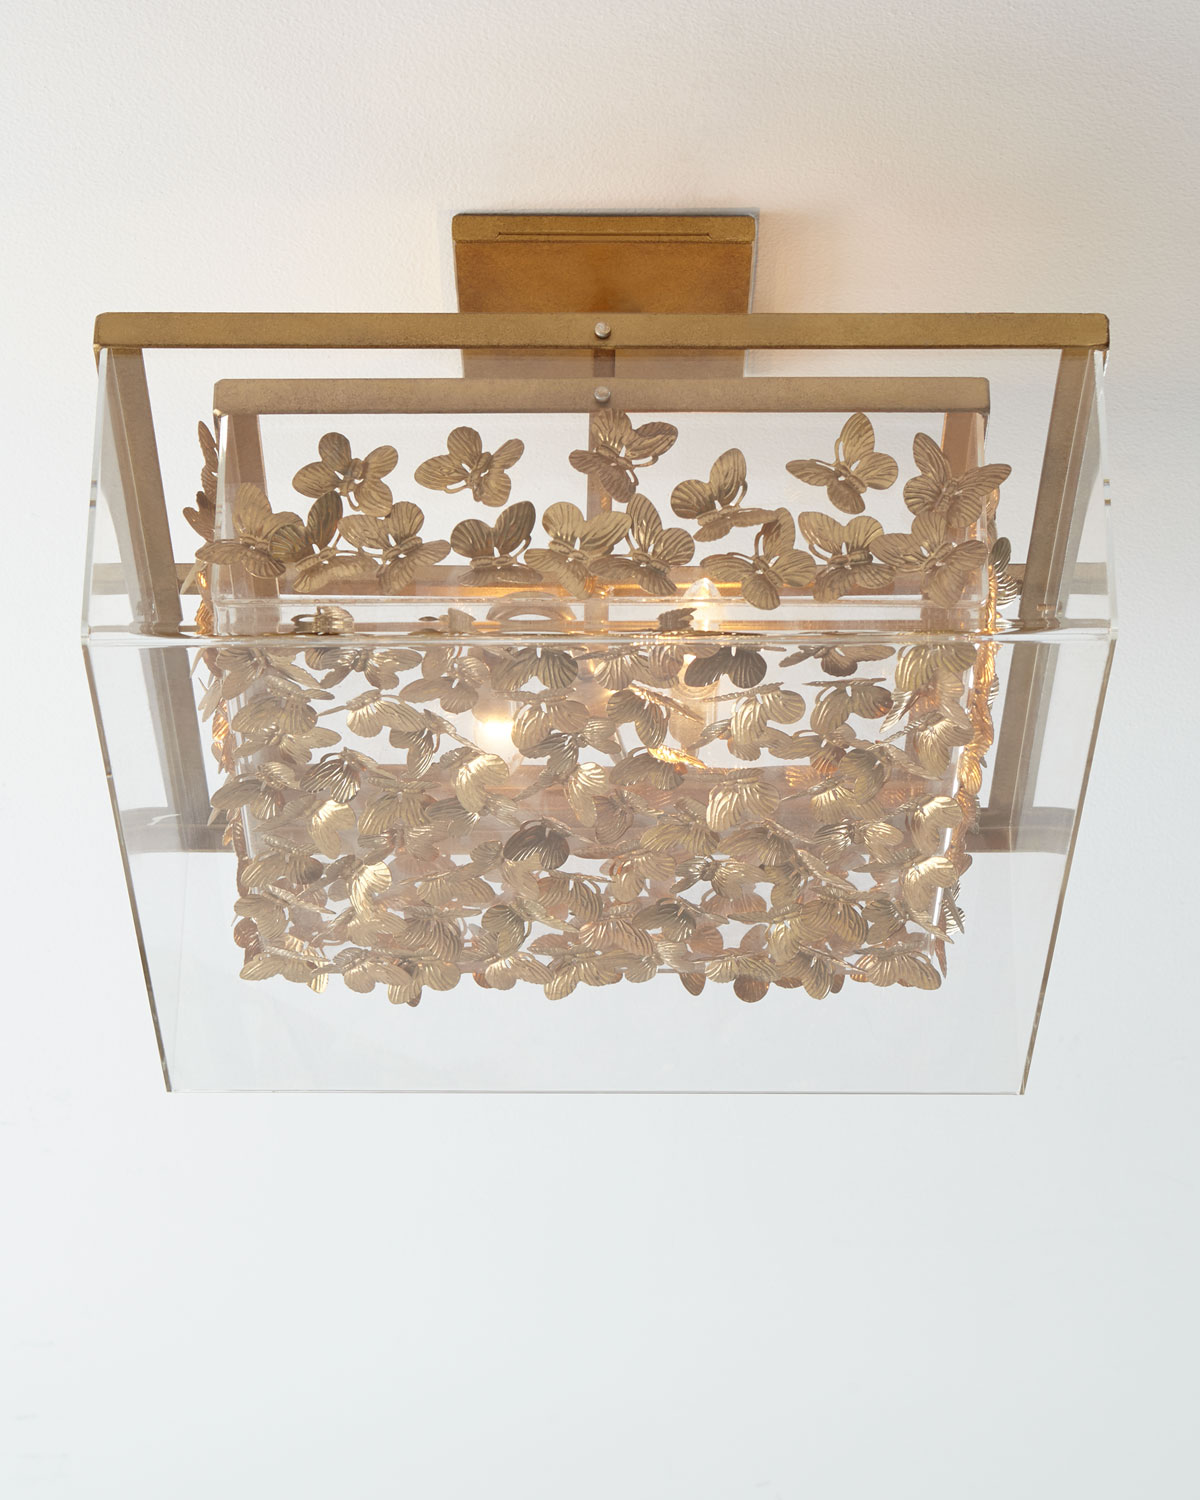 Ceiling light fixture neiman marcus quick look tommy mitchell butterfly flush mount ceiling light arubaitofo Choice Image